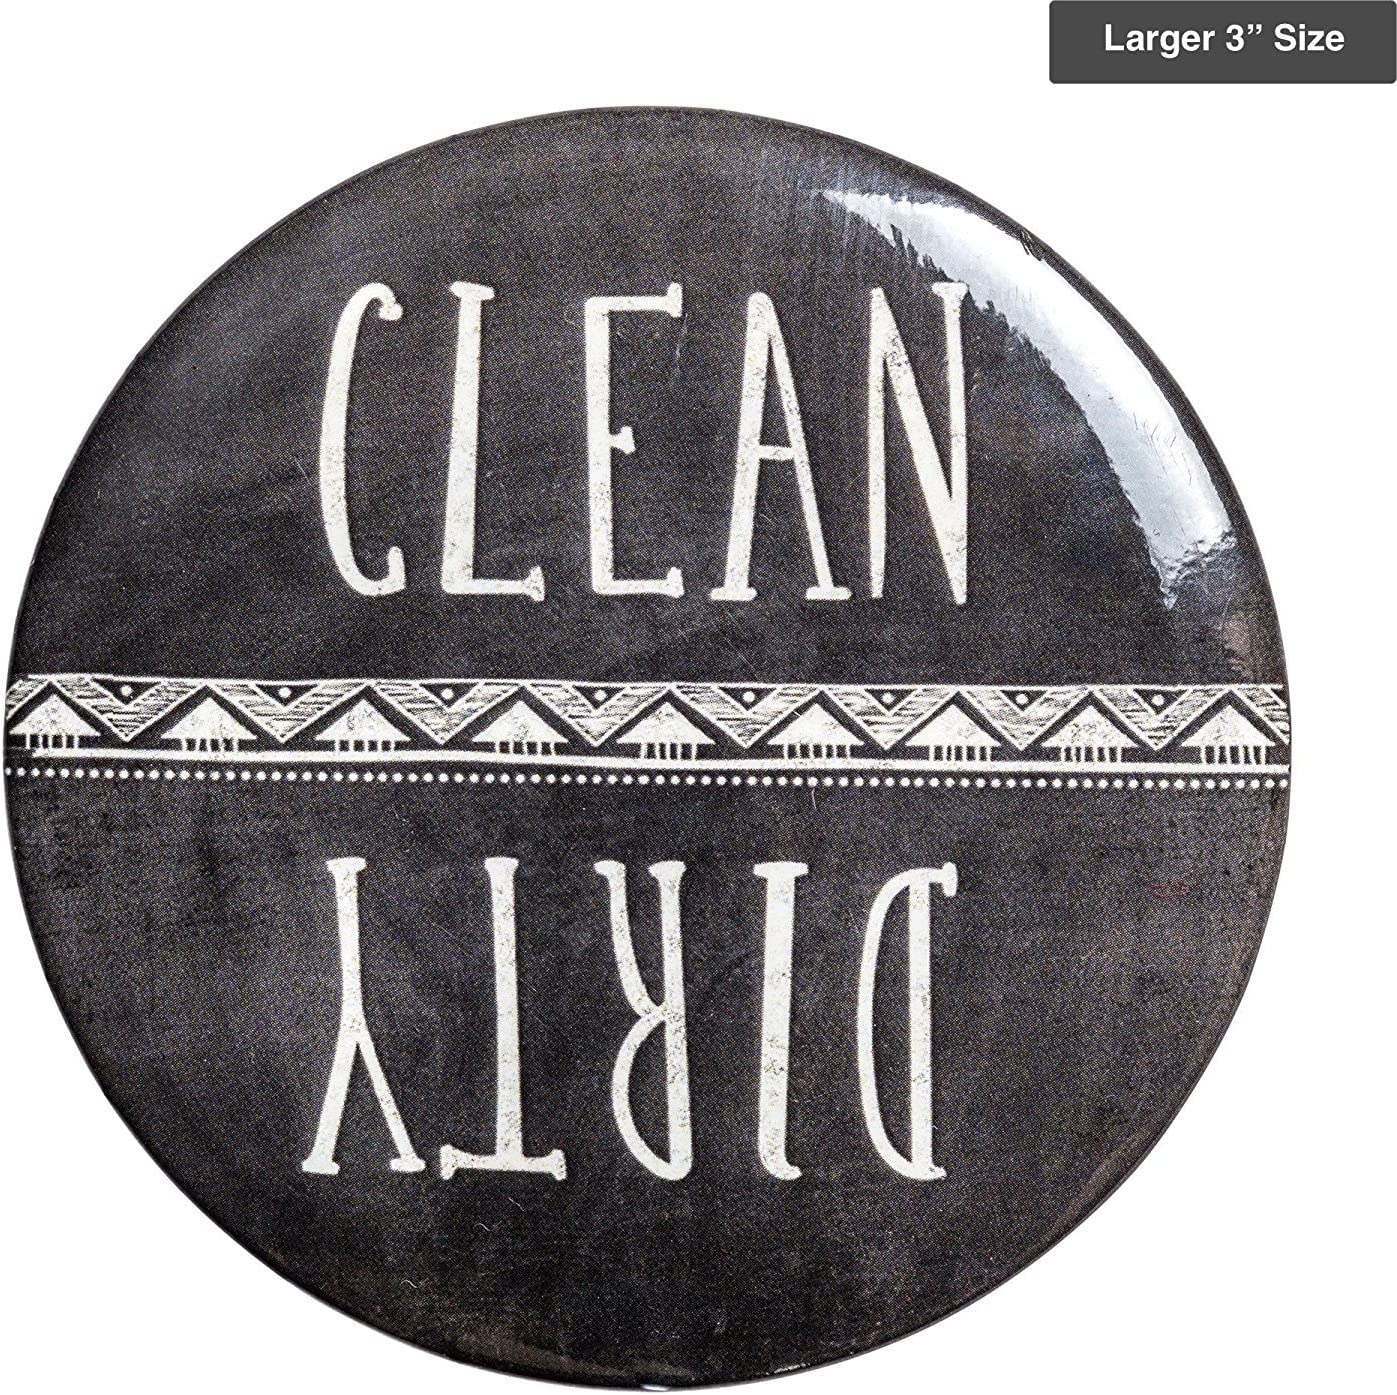 Sutter Signs Clean & Dirty Dishwasher Magnet (Chalkboard) Large 3""